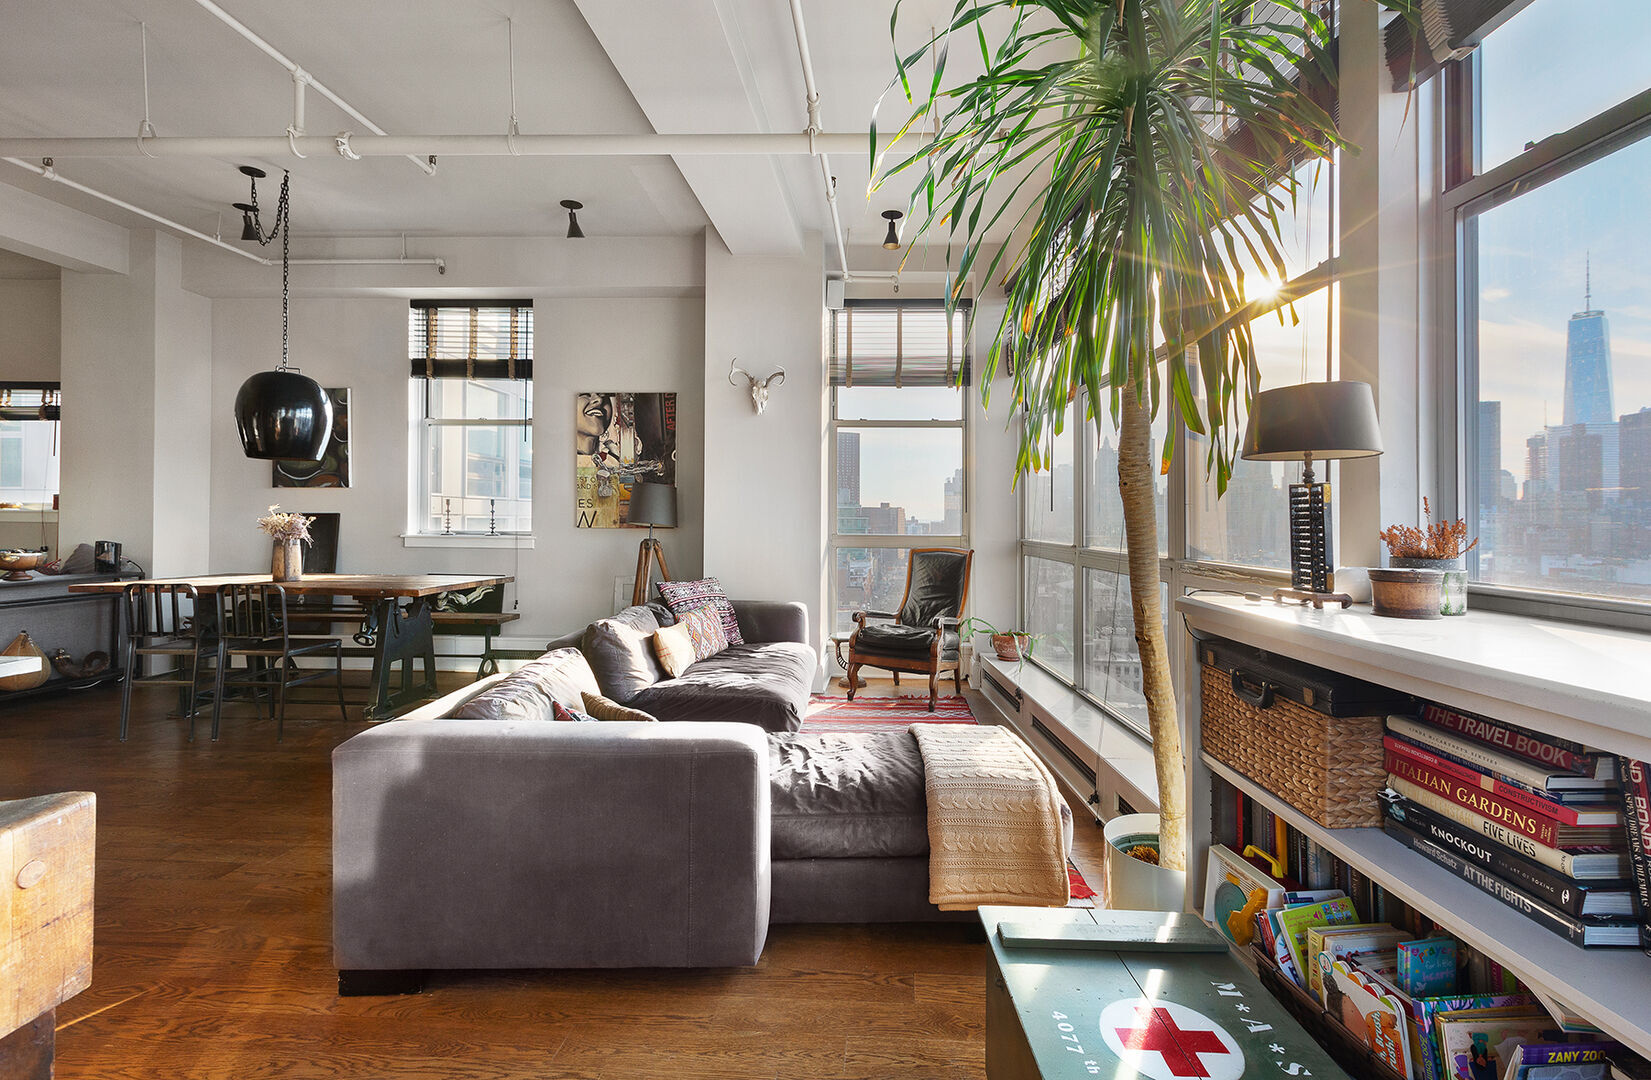 Apartment for sale at 195 Bowery, Apt 13